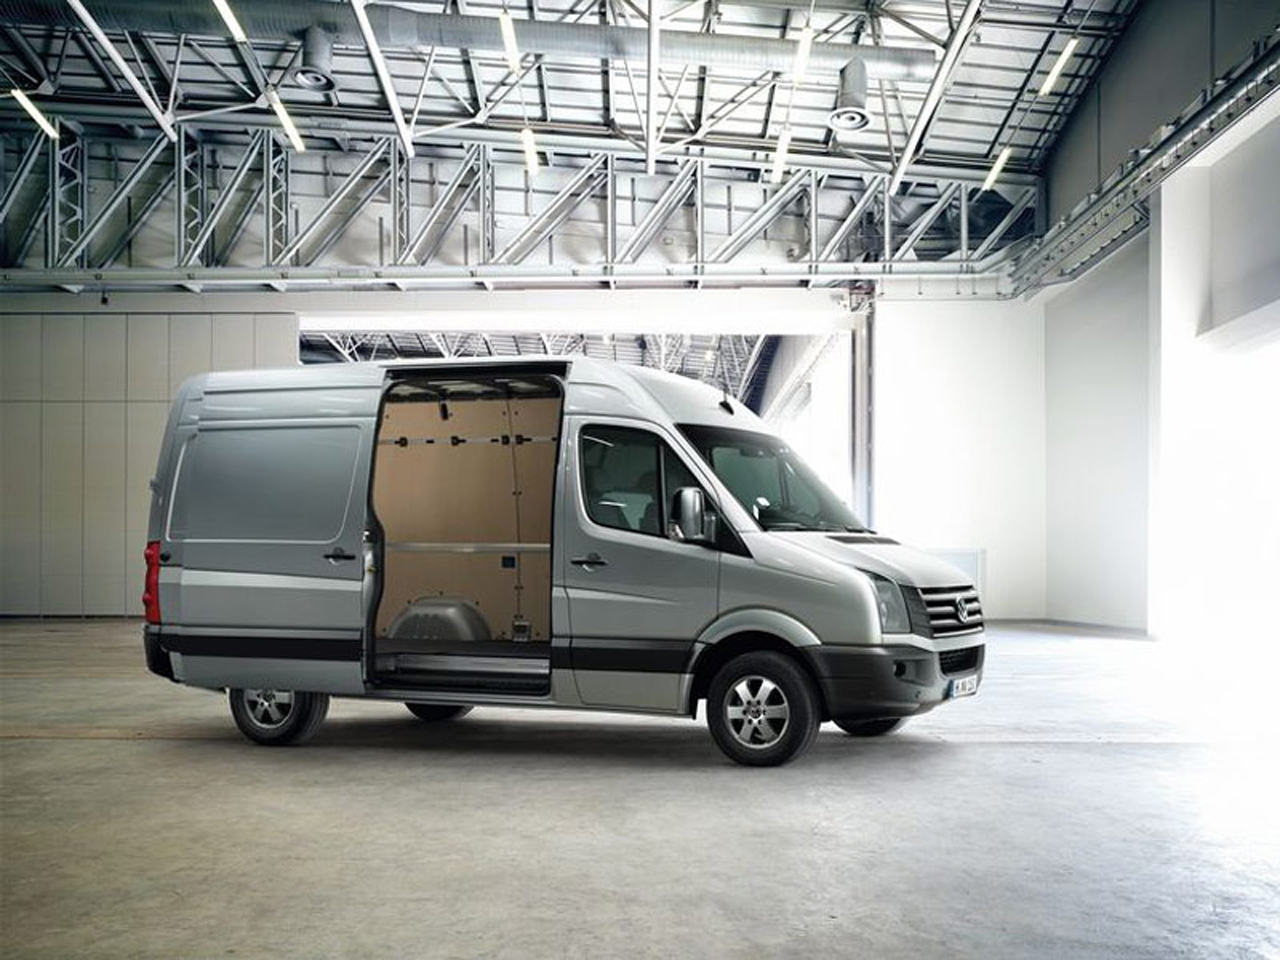 vw looking to man up ditch mercedes van deal autoblog. Black Bedroom Furniture Sets. Home Design Ideas